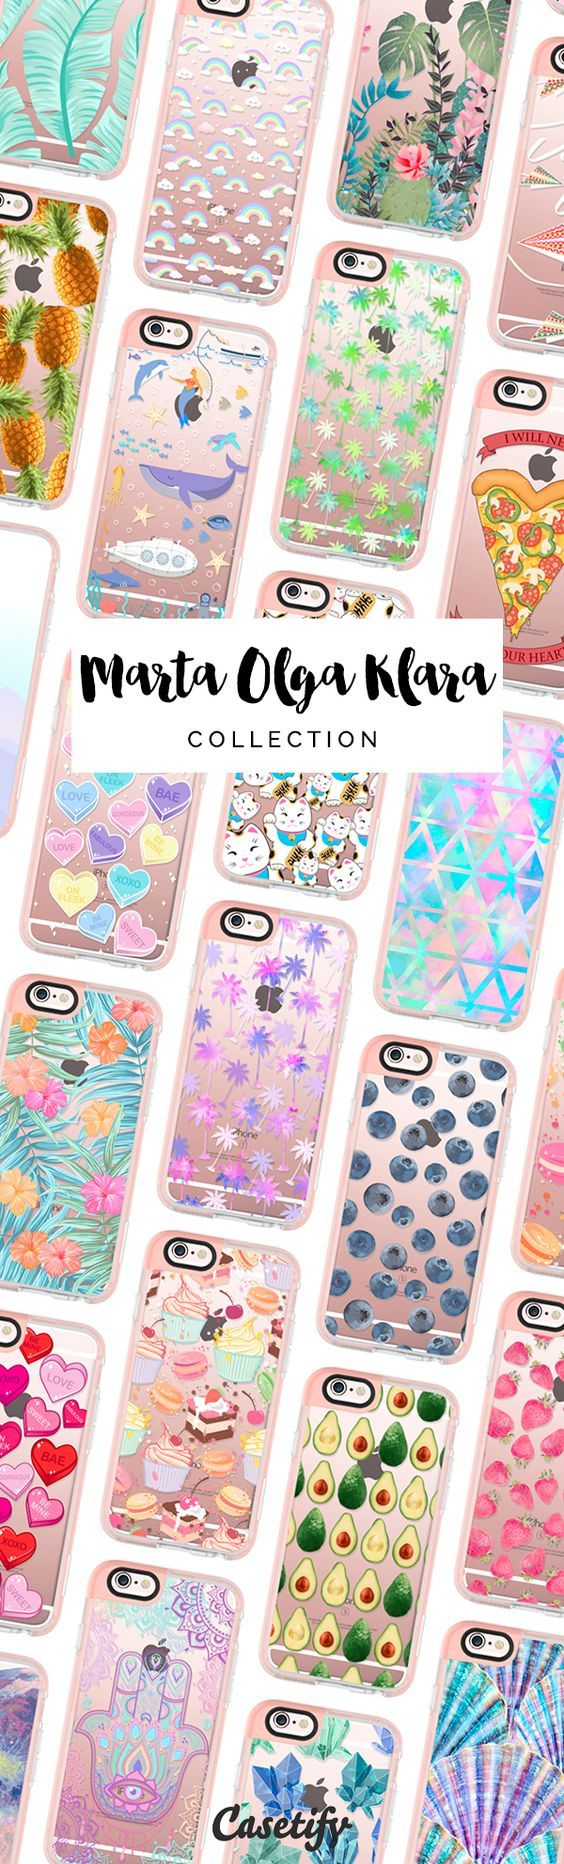 All time favourite floral animal food iPhone 6 protective phone case designs by @martaolgaklara | Click through to see more iphone phone case ideas >>> https://www.casetify.com/martaolgaklara/collection #pastel | @casetify